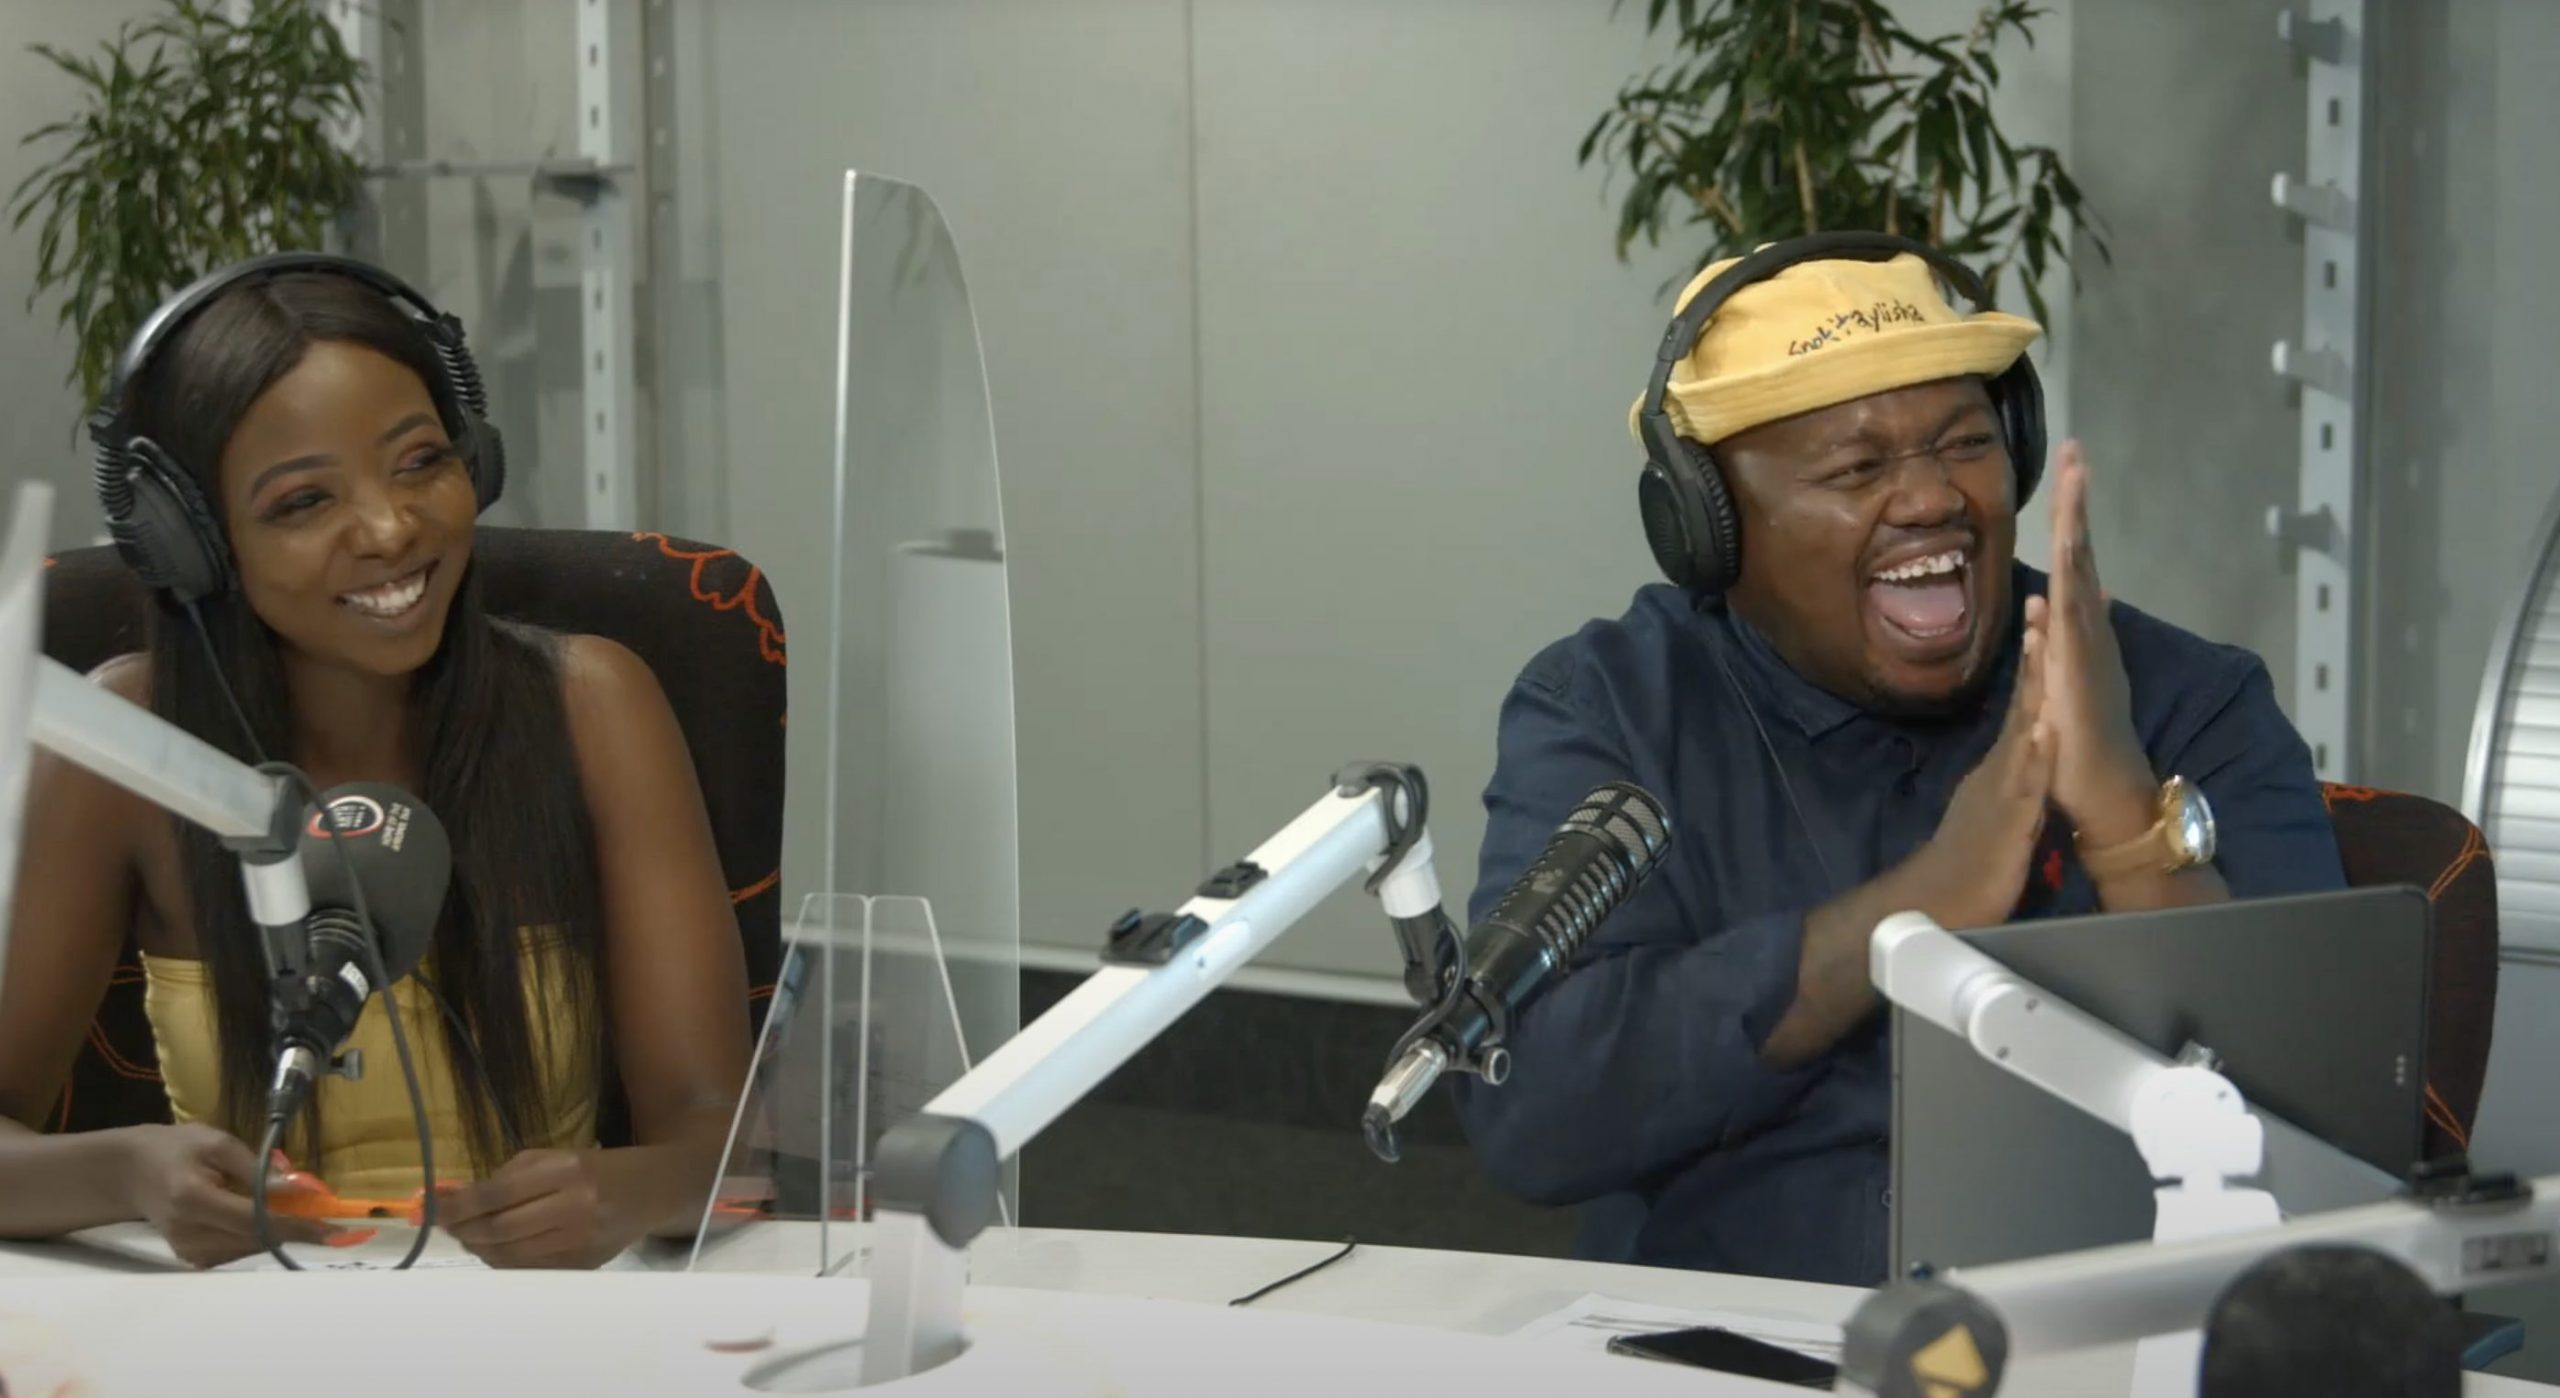 Skhumba talks about his first experience at groove after months of lockdown.